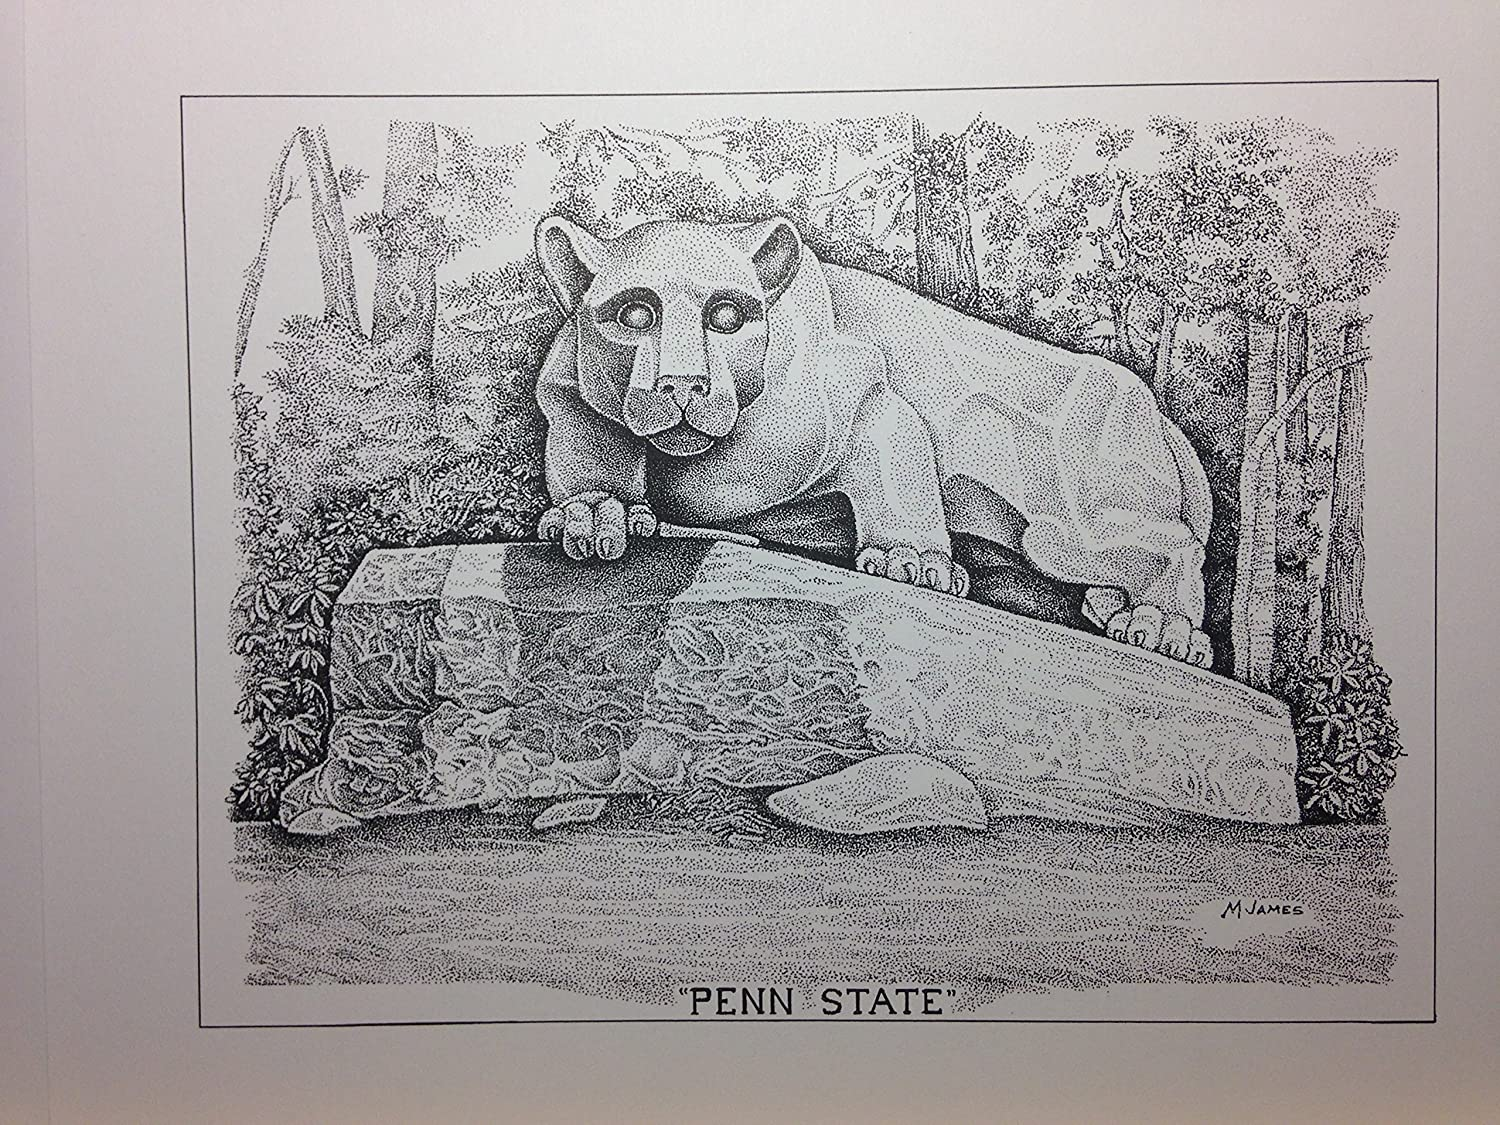 Penn State - Lion Statue 8'x10' pen and ink print